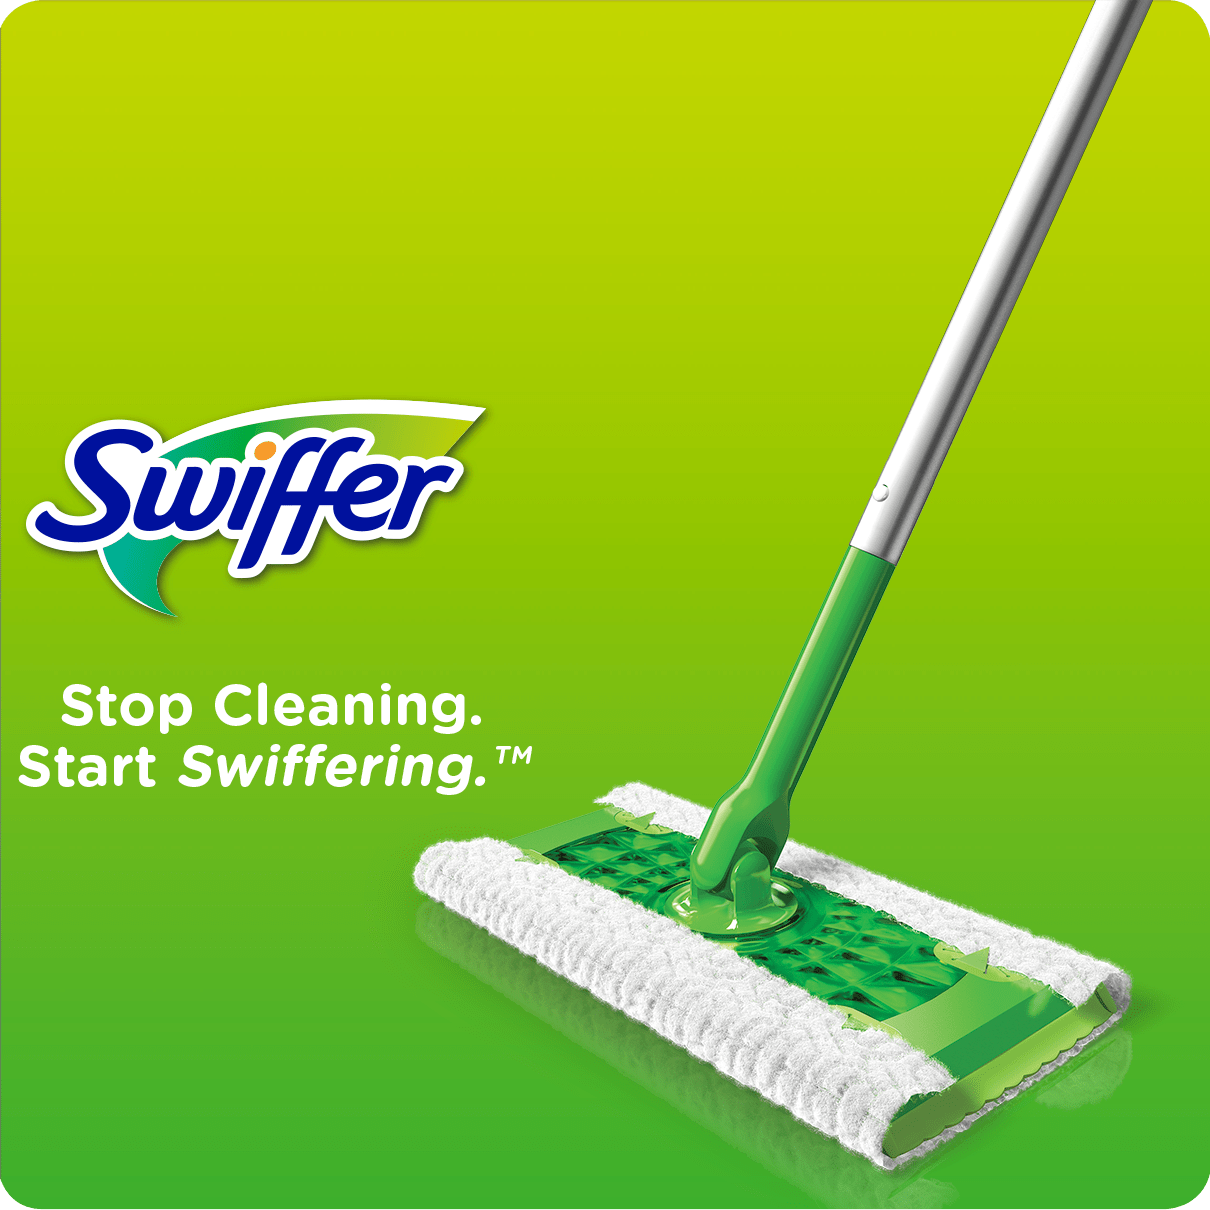 SWIFFER Sweeper, Stop cleaning, start swiffering